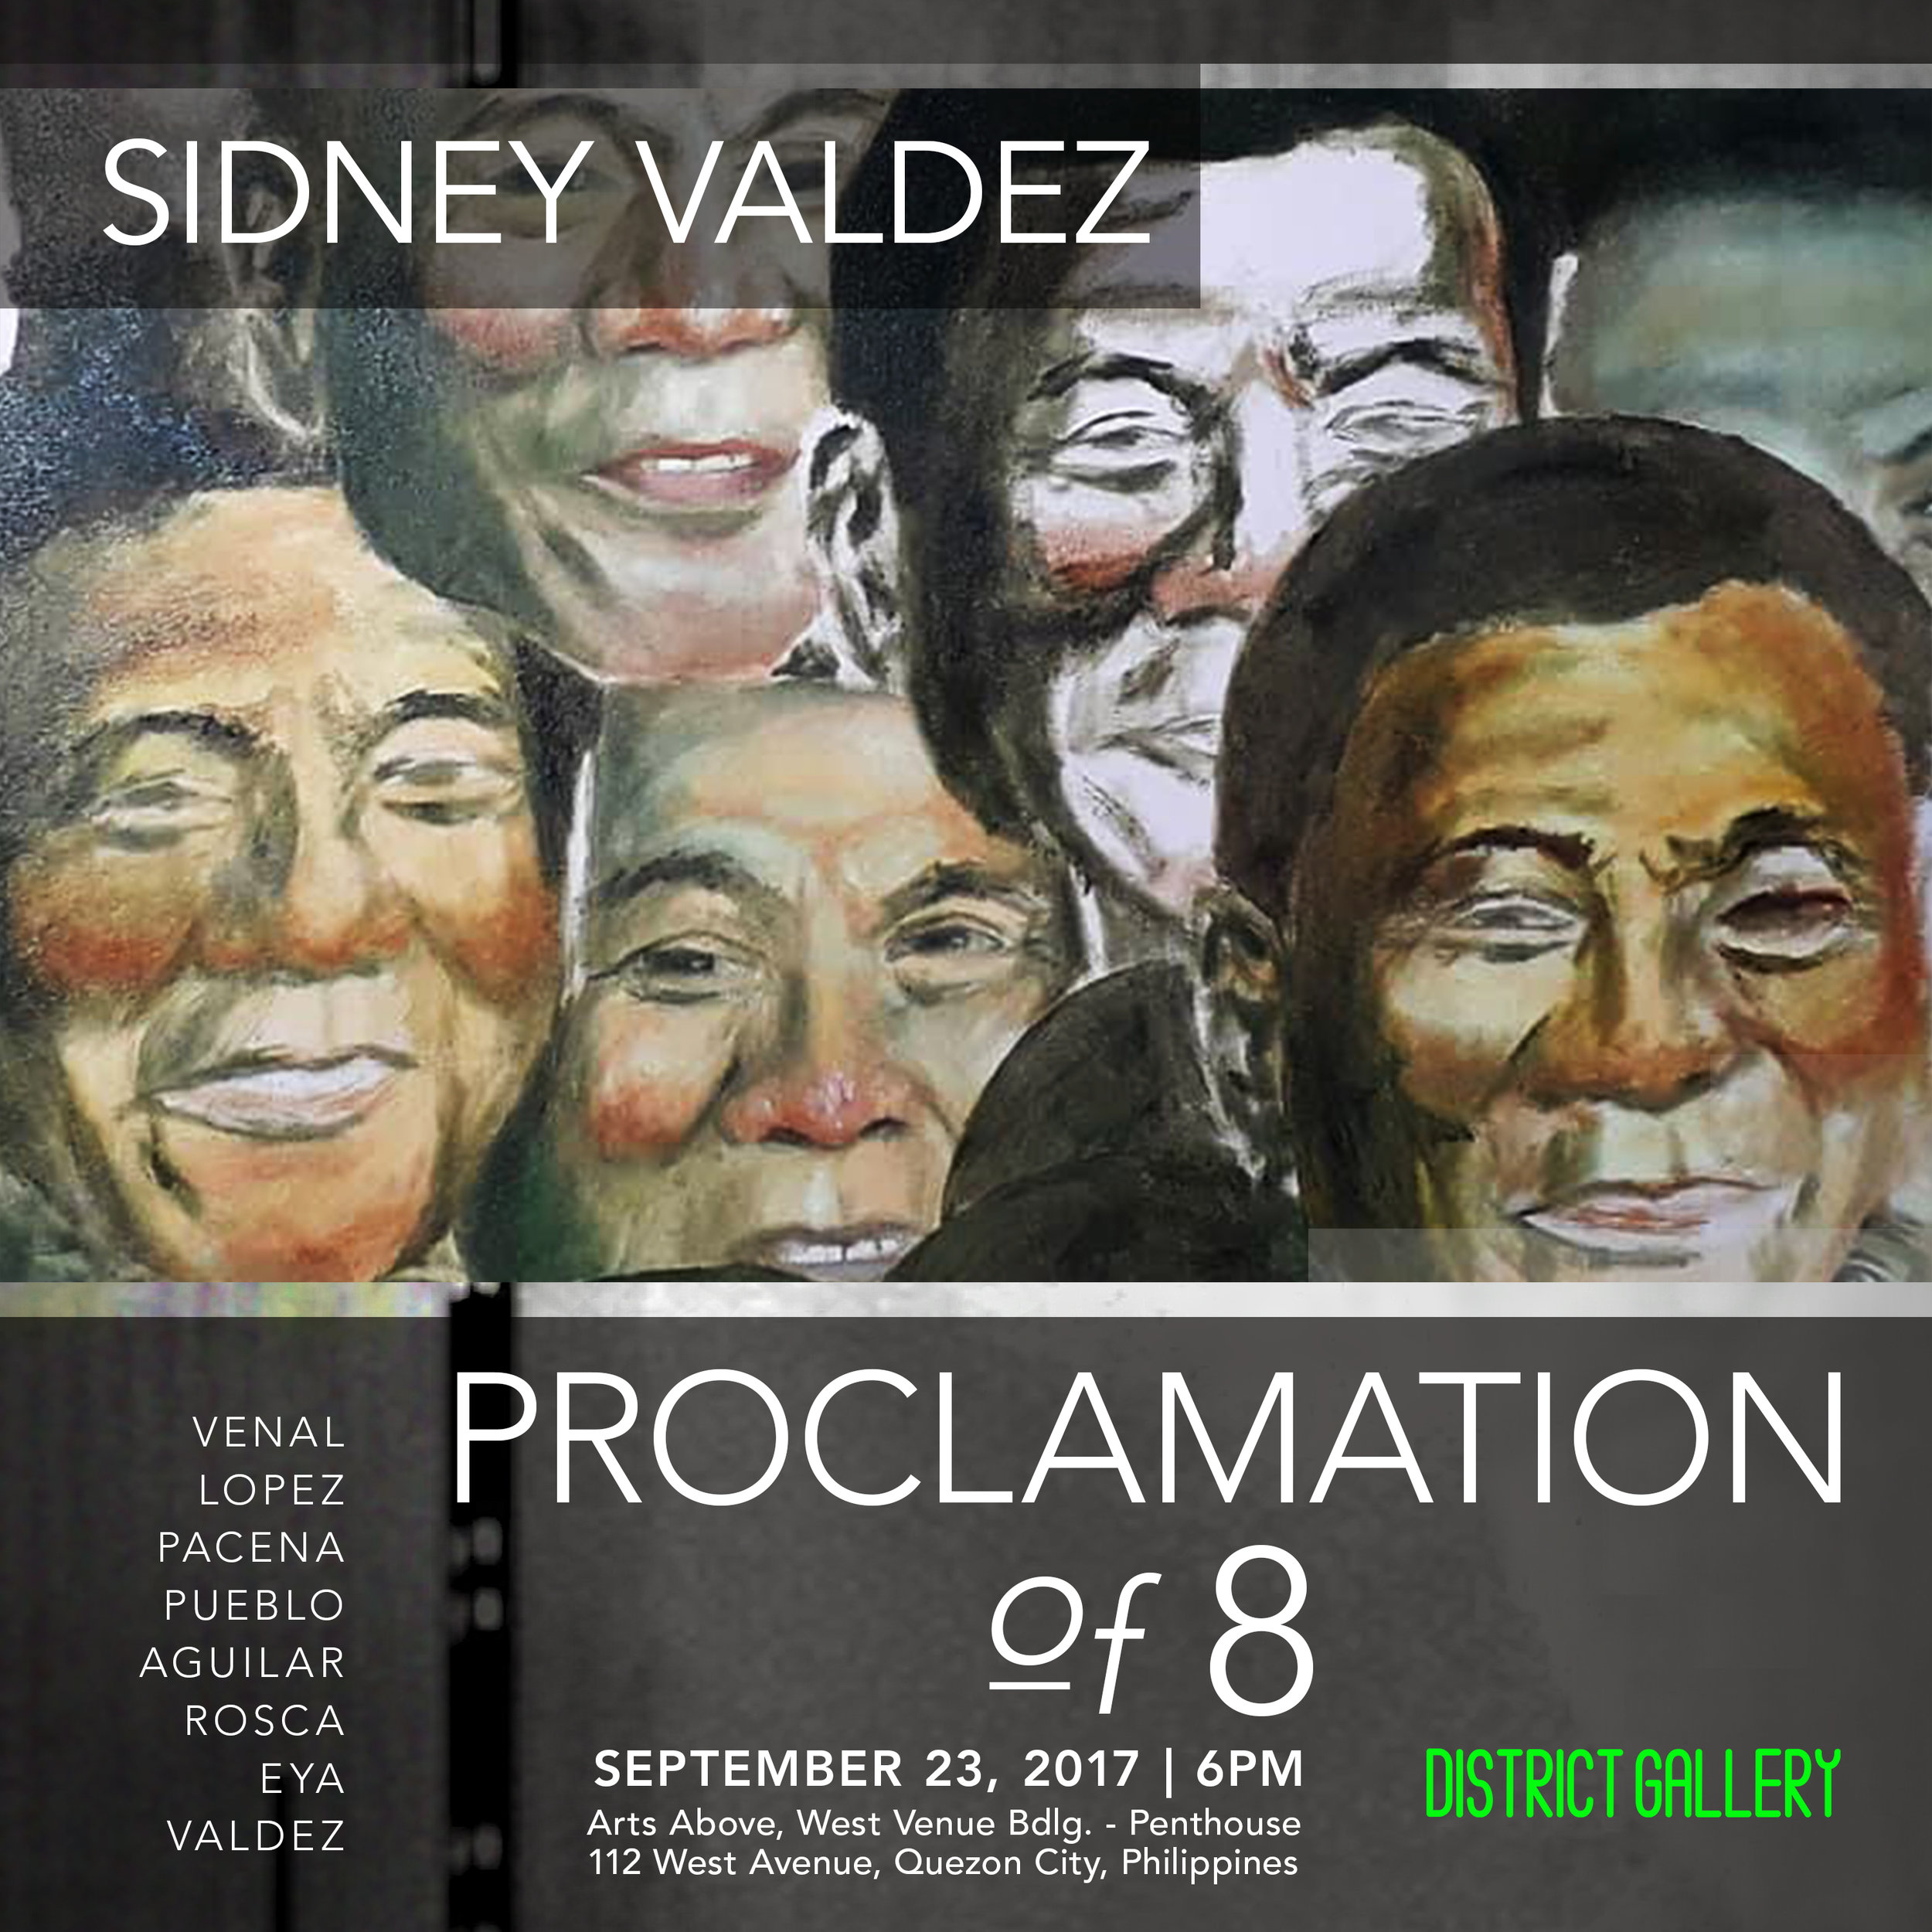 5 PROCLAMATION of Sidney Valdez.jpg